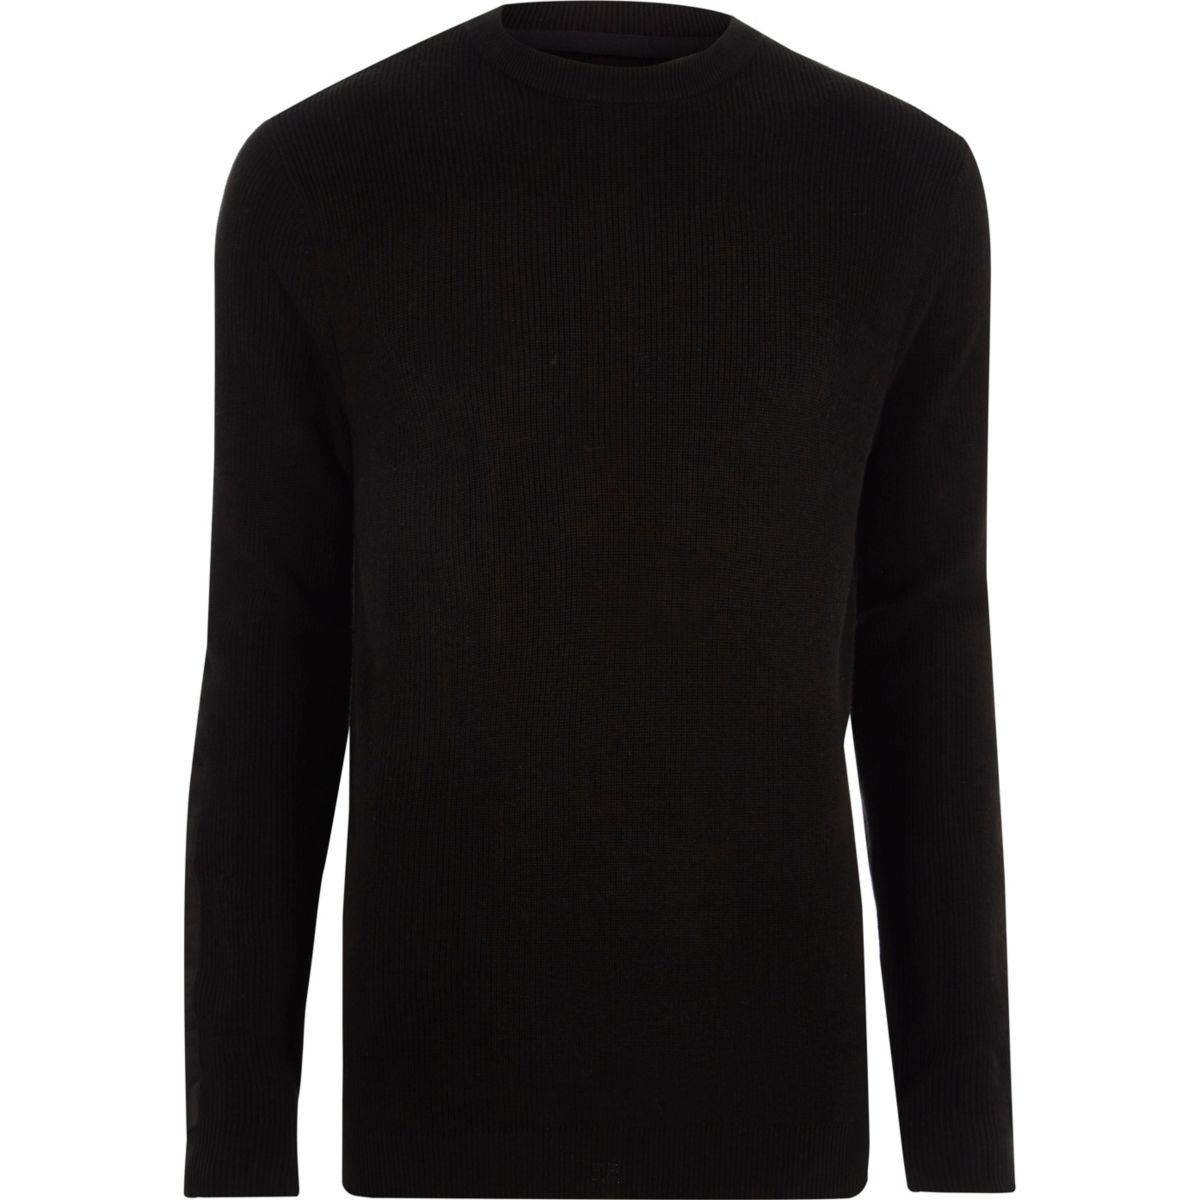 Black ribbed crew neck patch sweater